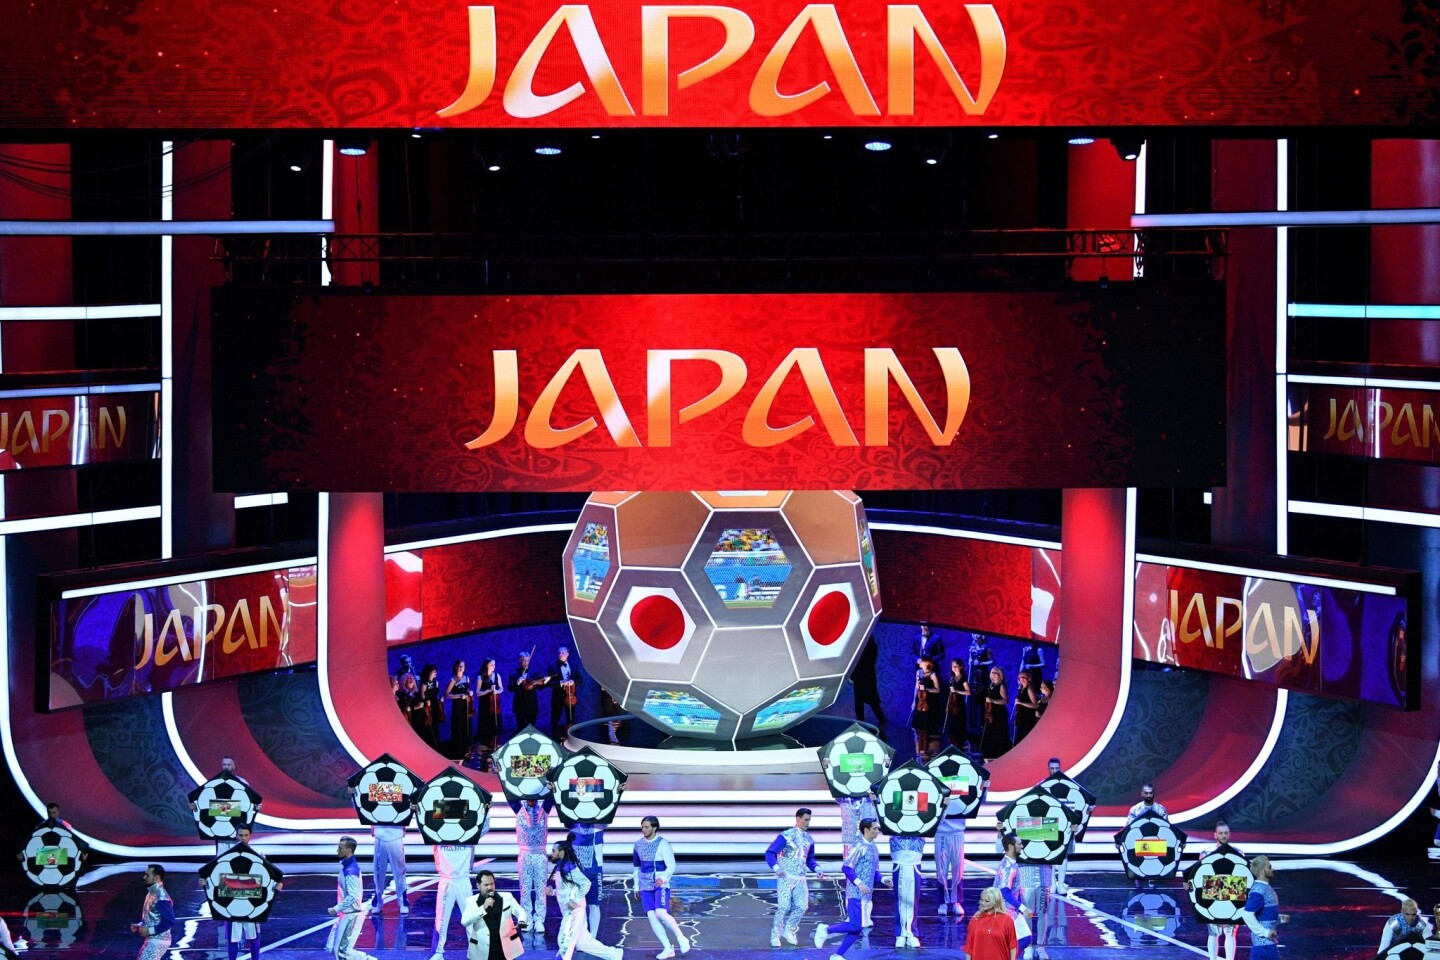 """Artists perform on stage as """"Japan"""" is displayed on screens during the Final Draw for the 2018 FIFA World Cup football tournament at the State Kremlin Palace in Moscow on December 1, 2017. The 2018 FIFA World Cup will be held from June 14 and July 15, 2018, in 11 Russian cities. / AFP PHOTO / Mladen ANTONOVMLADEN ANTONOV/AFP/Getty Images ** OUTS - ELSENT, FPG, CM - OUTS * NM, PH, VA if sourced by CT, LA or MoD **"""